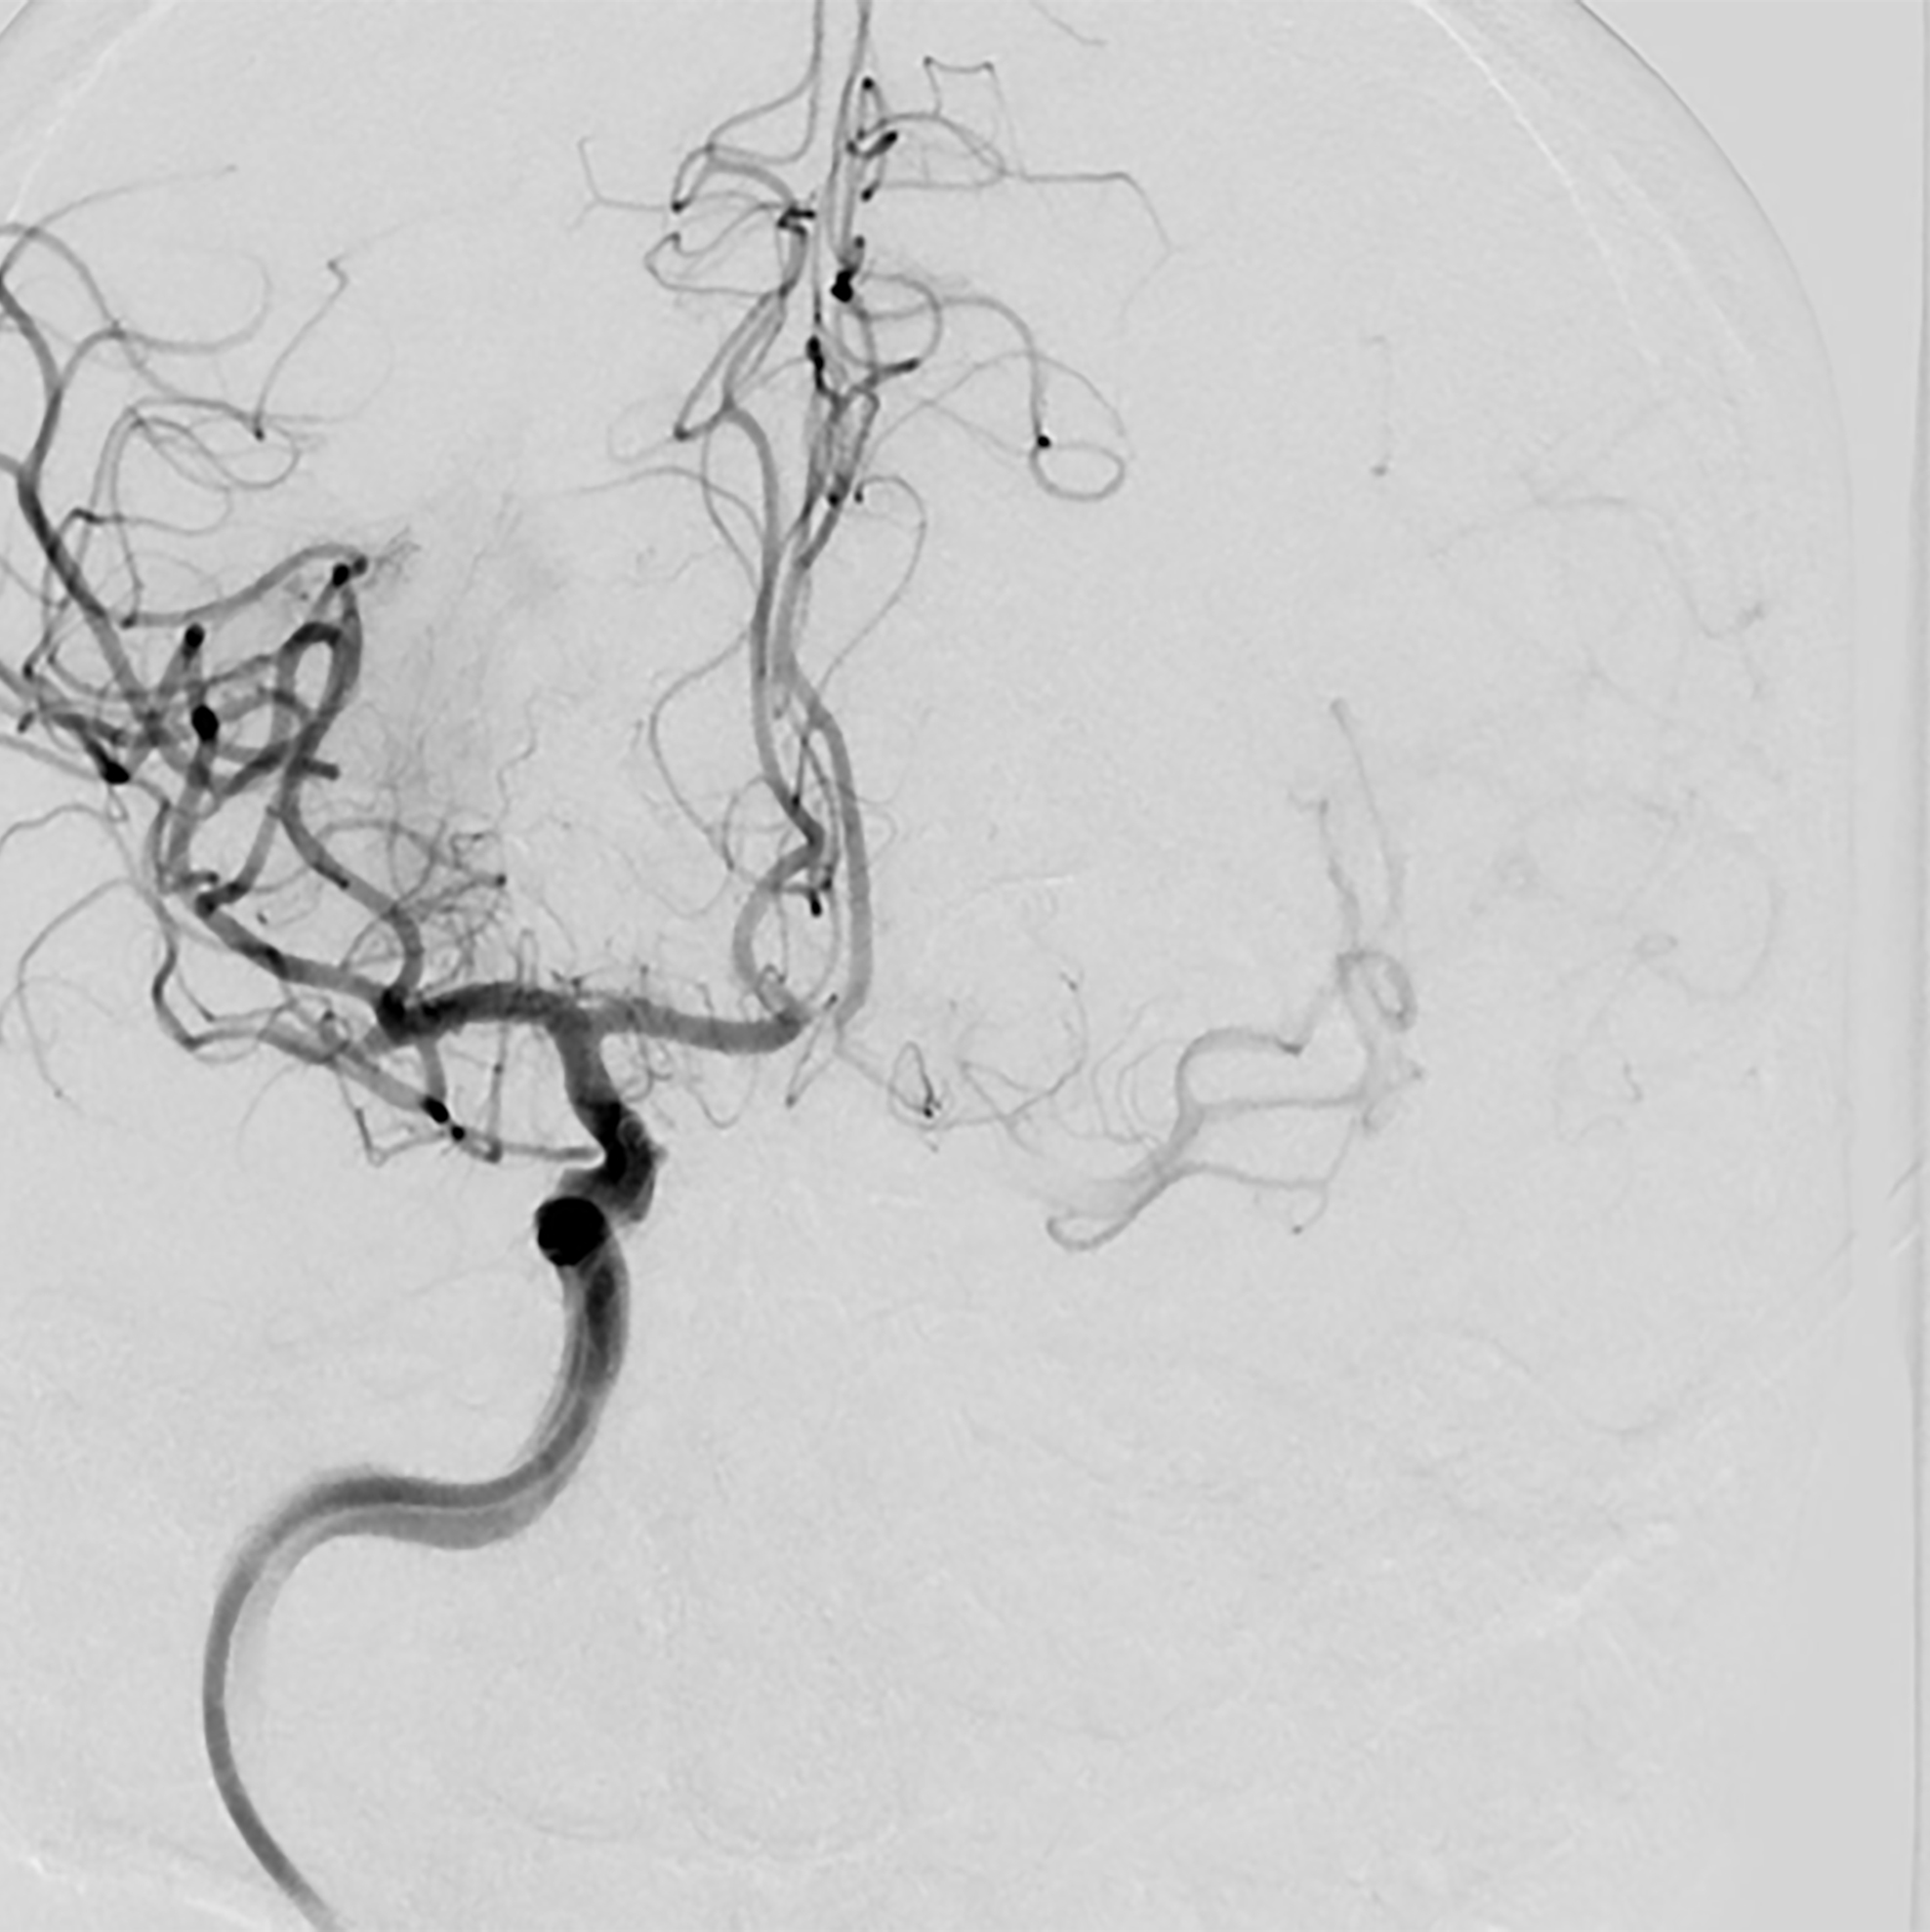 Revascularization of right middle cerebral artery